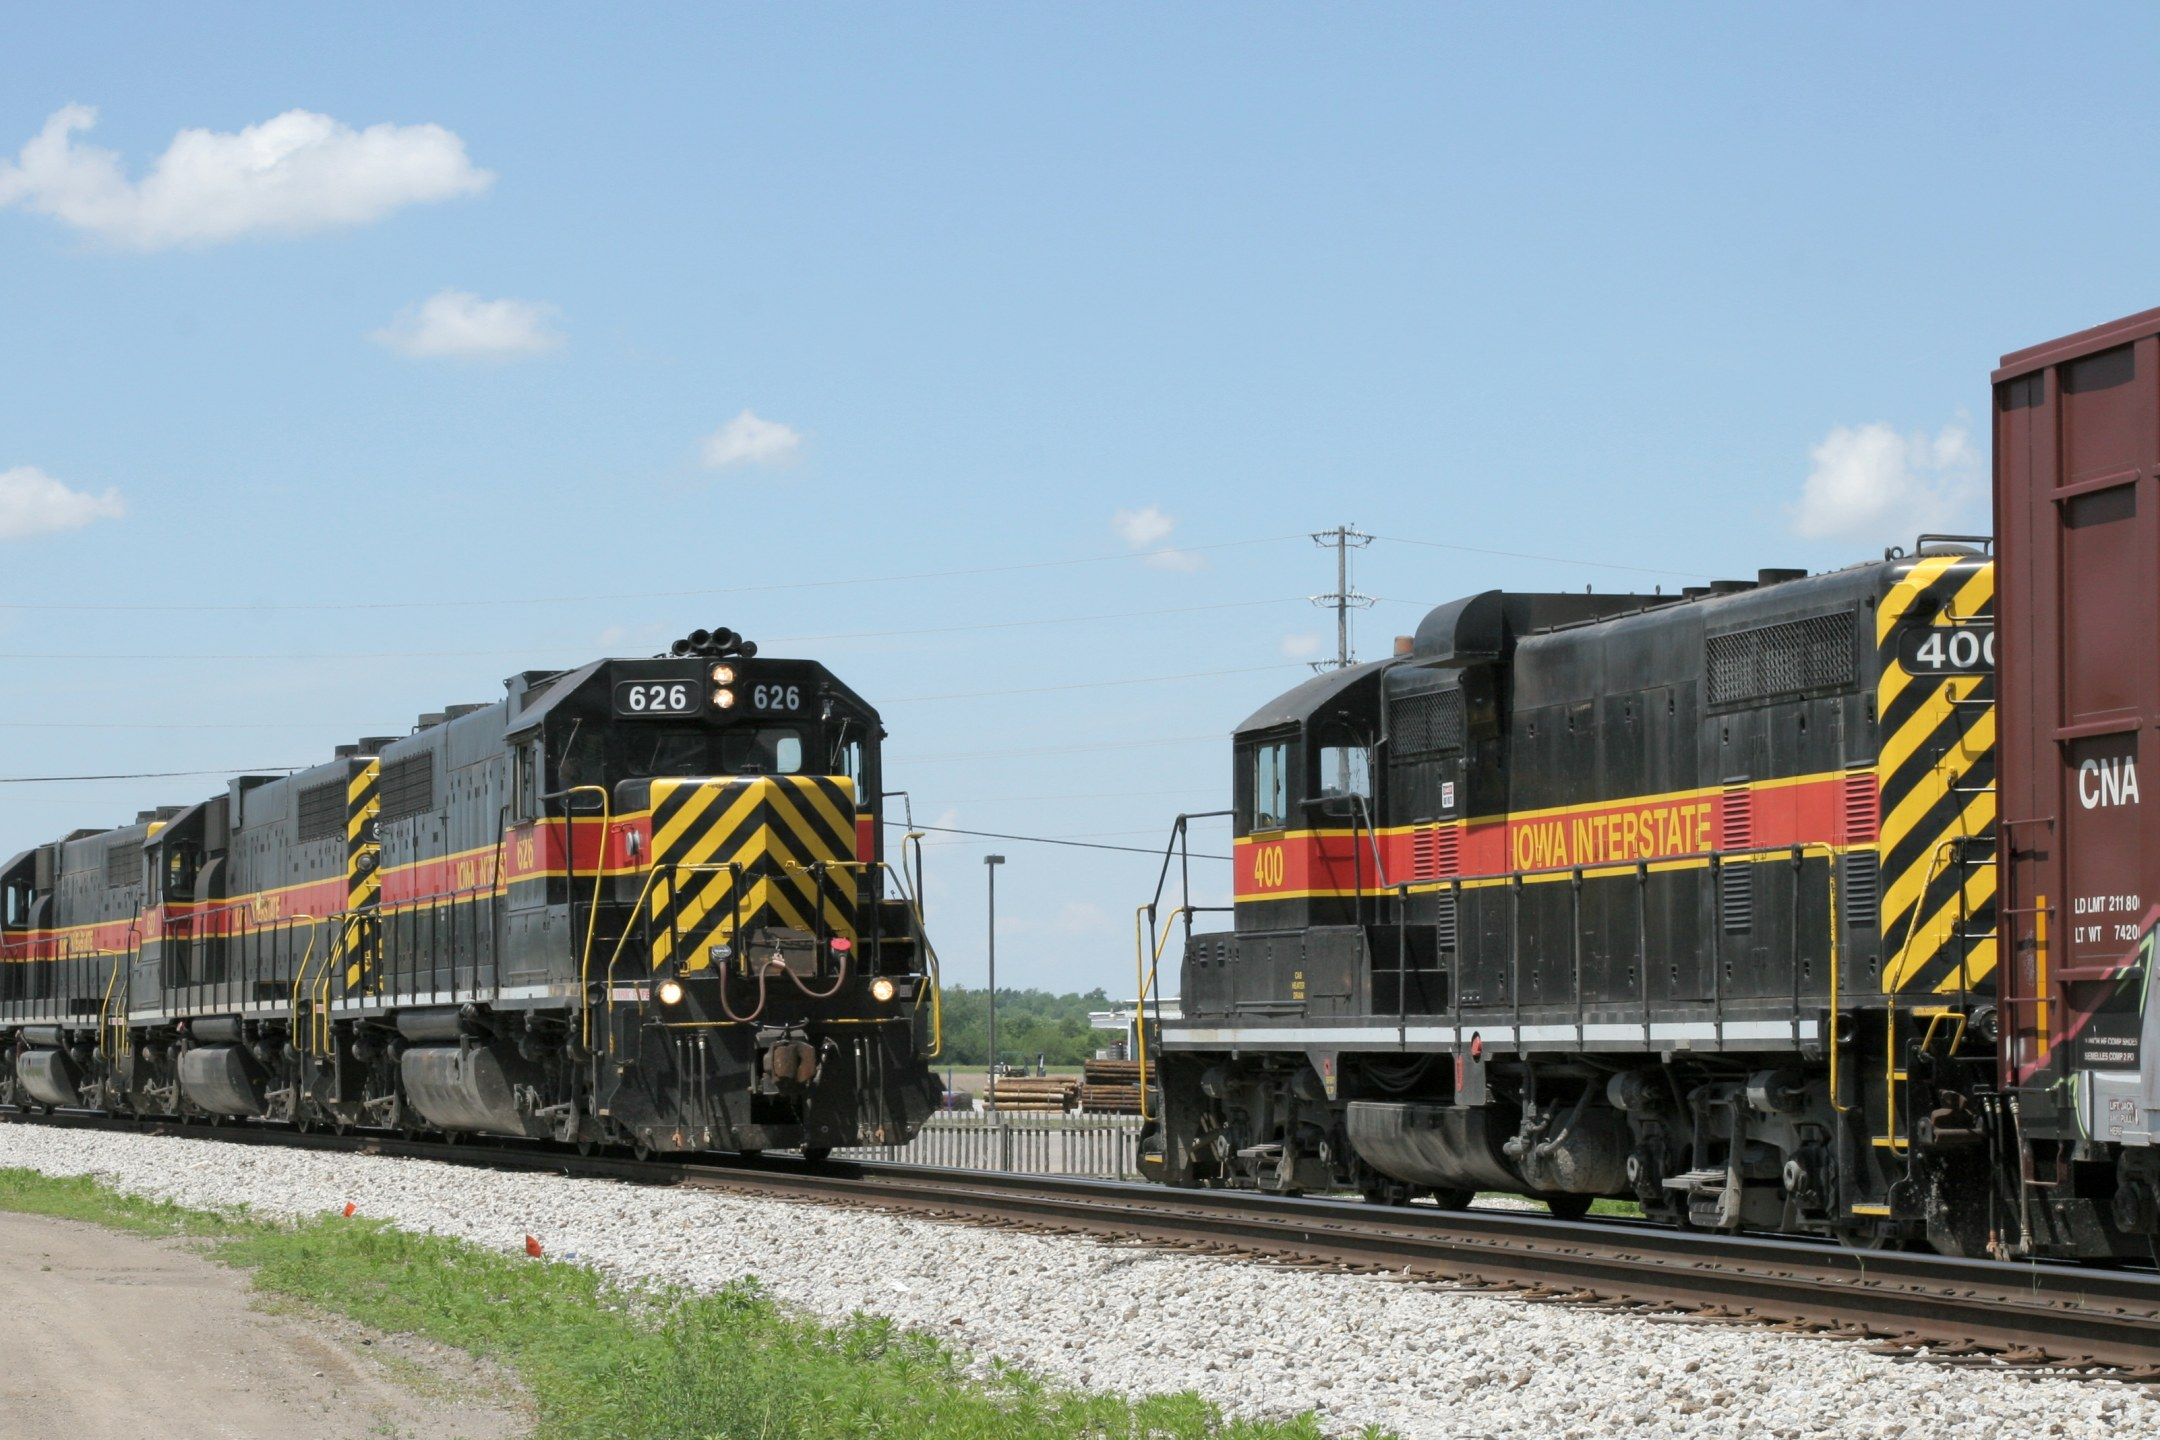 The light power from CBBI-31 (626--627-602) comes forward to start up 400 and add her to the consist